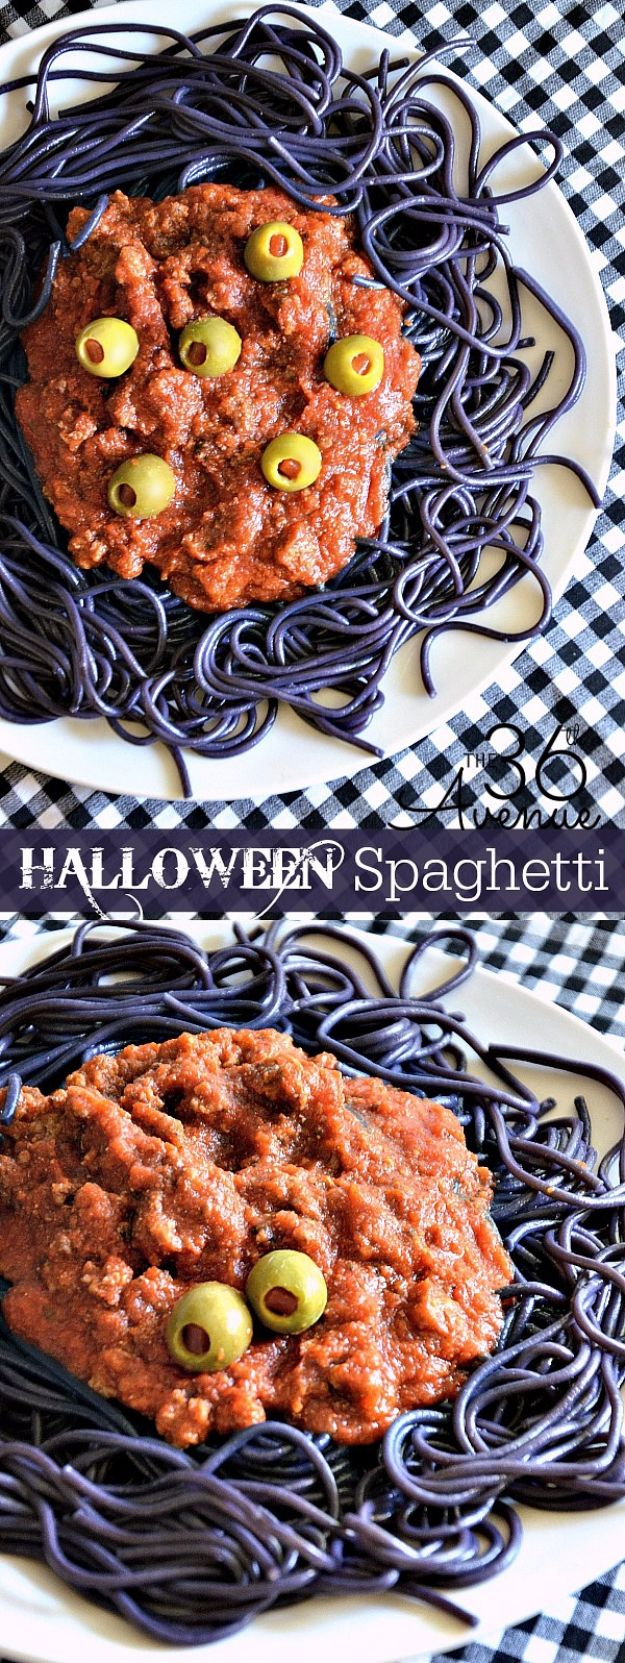 Best Halloween Party Snacks - Halloween Spaghetti - Healthy Ideas for Kids for School, Teens and Adults - Easy and Quick Recipes and Idea for Dips, Chips, Spooky Cookies and Treats - Appetizers and Finger Foods Made With Vegetables, No Candy, Cheap Food, Scary DIY Party Foods With Step by Step Tutorials http://diyjoy.com/halloween-party-snacks